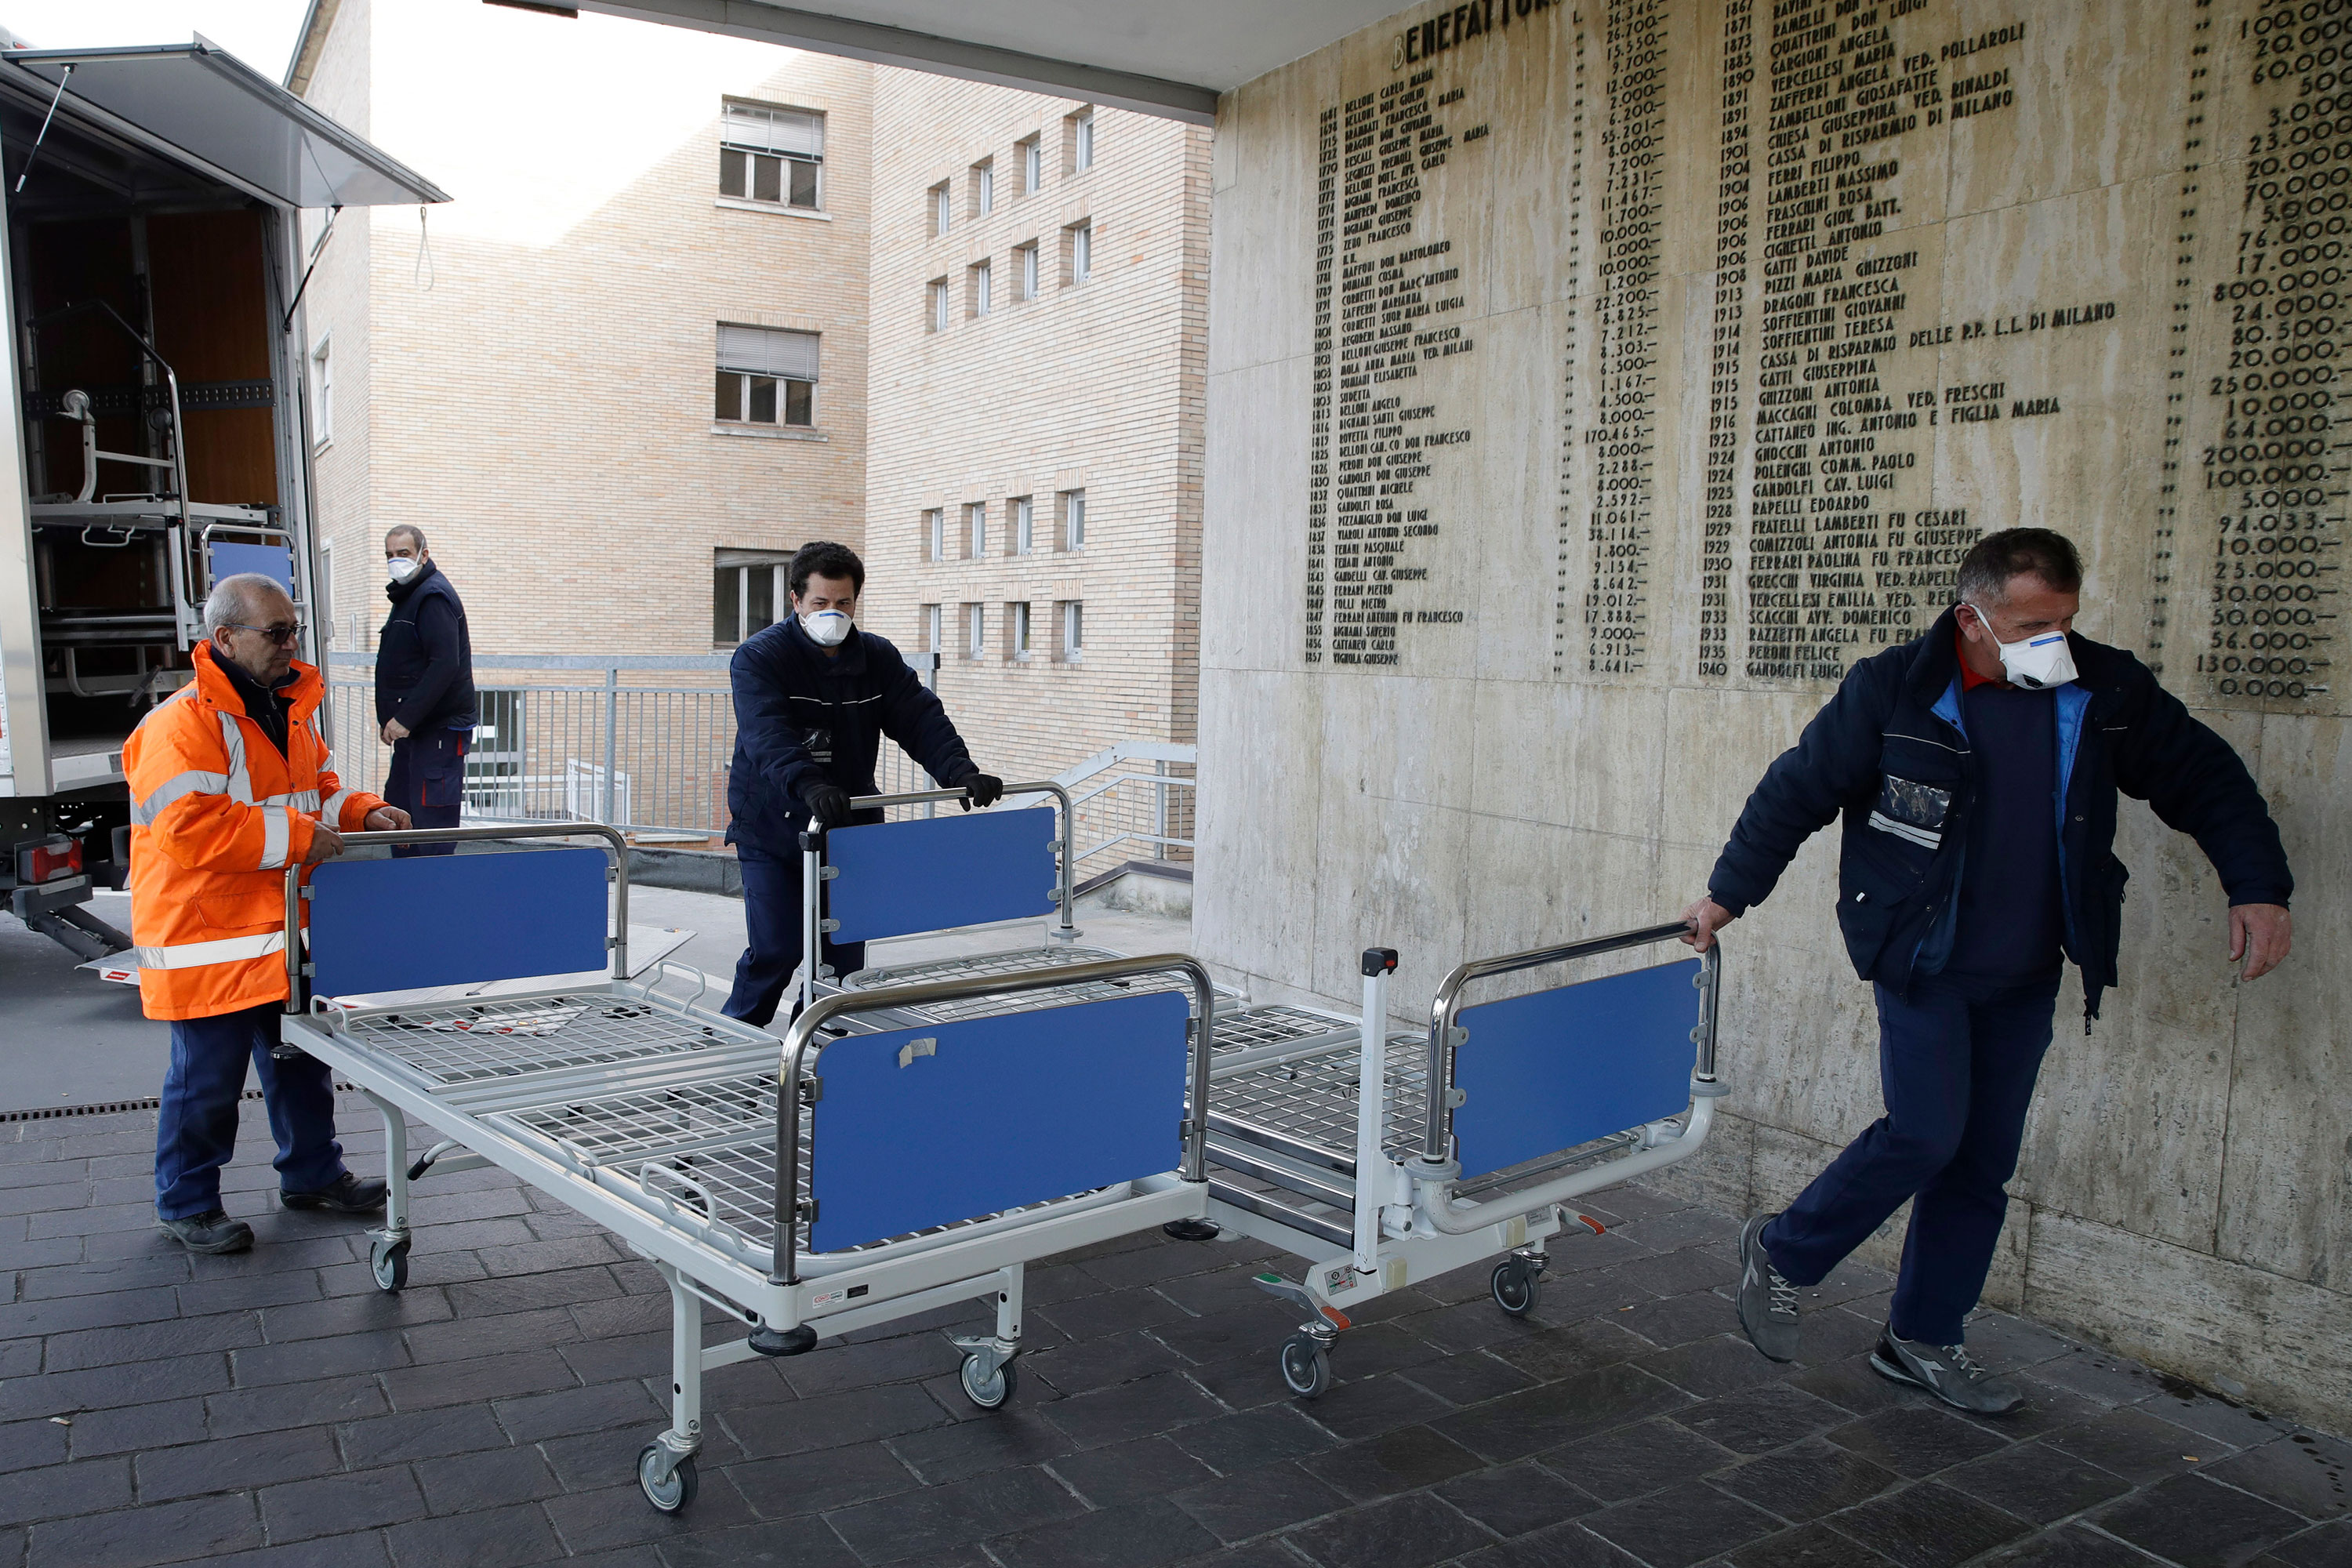 Personnel move new beds into a hospital in Codogno, Italy, on Friday, February 21.